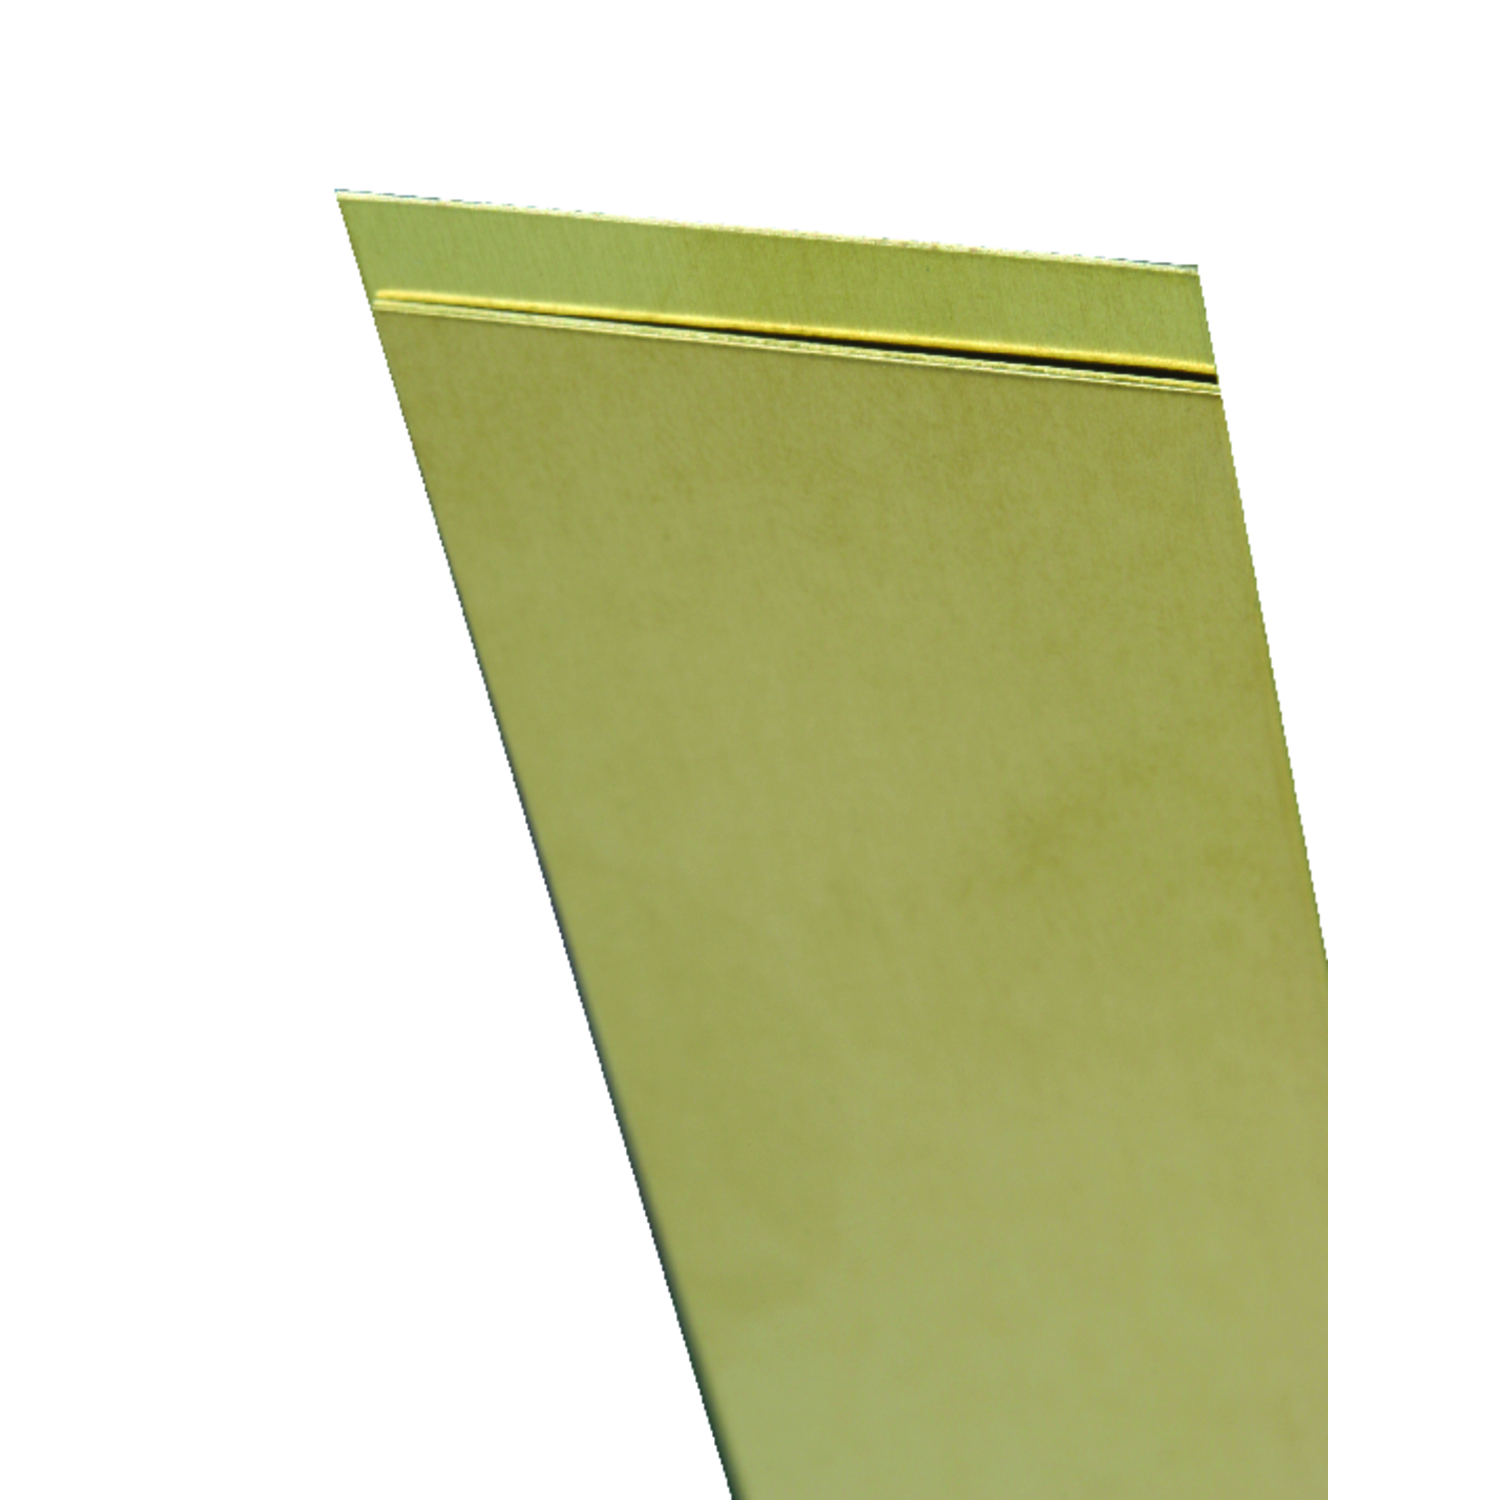 K&S  0.16 in.  x 1/2 in. W x 36 in. L Brass  Metal Strip